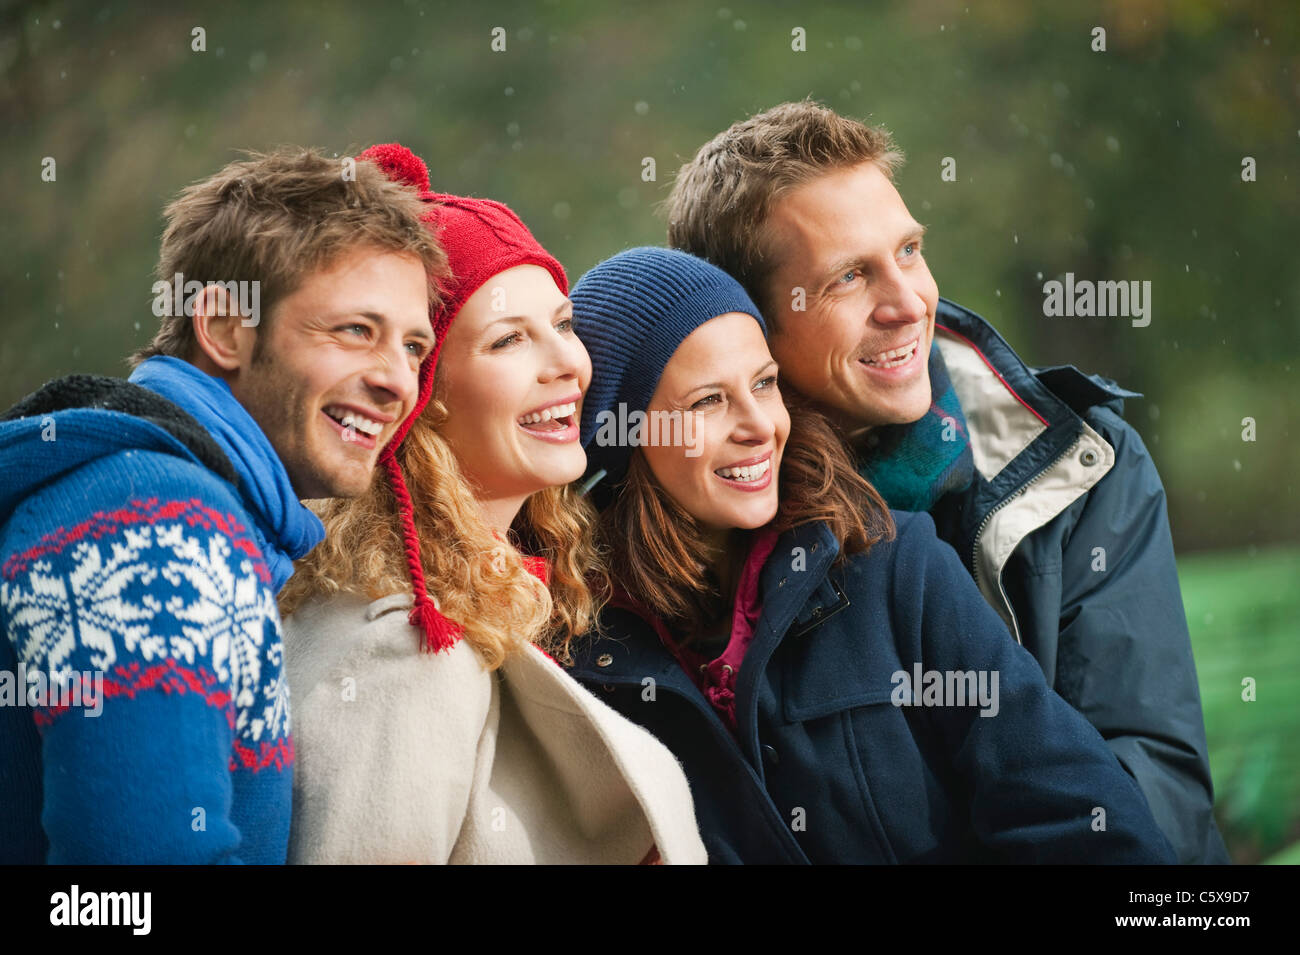 Germany, Bavaria, English Garden, Four persons laughing, portrait, close-up - Stock Image